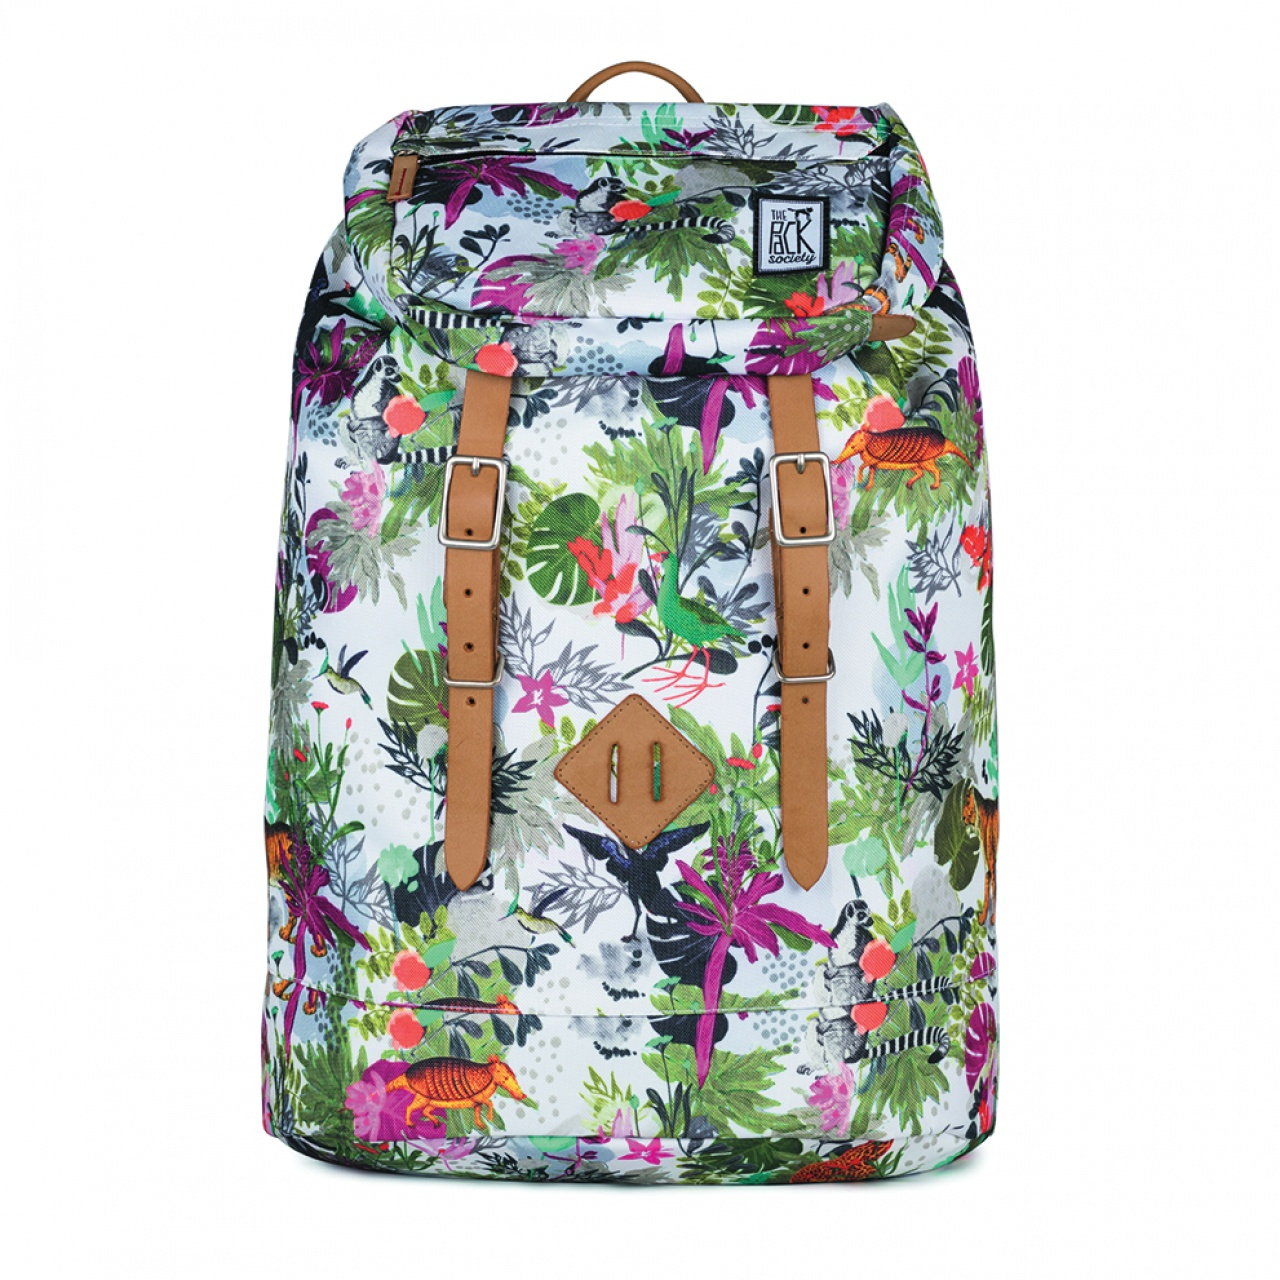 Rucsac mare The Pack Society Multicolor Jungle